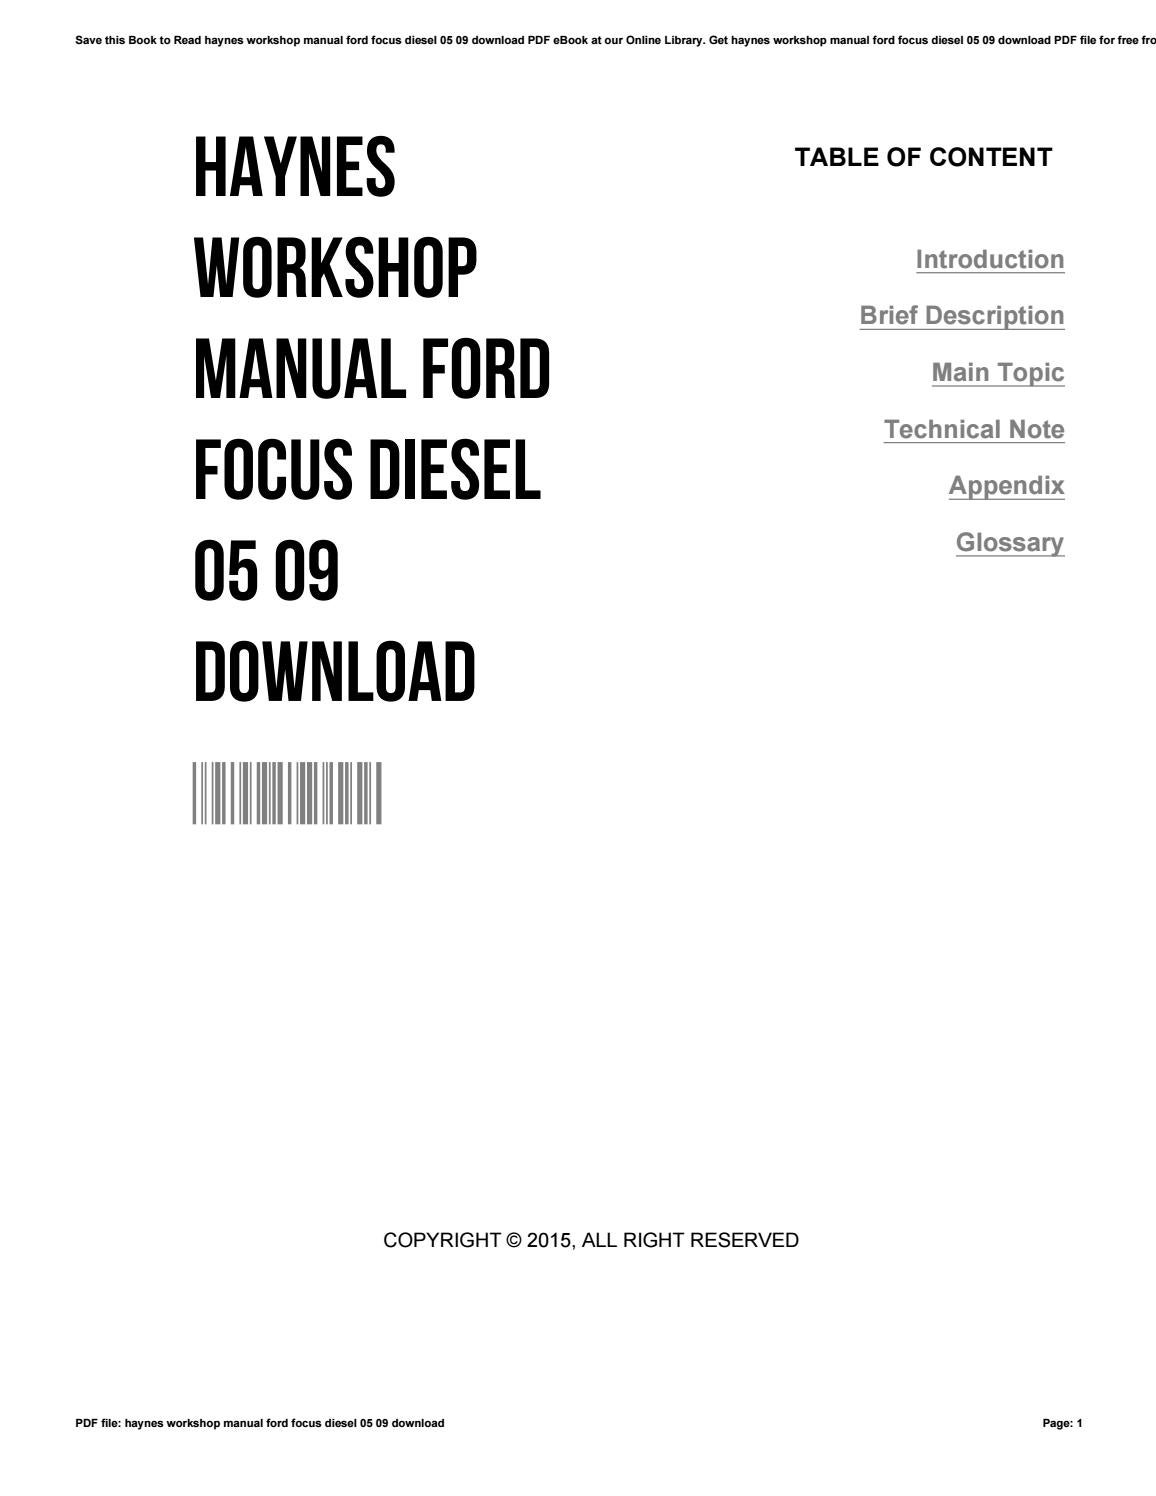 Haynes workshop manual ford focus diesel 05 09 download by